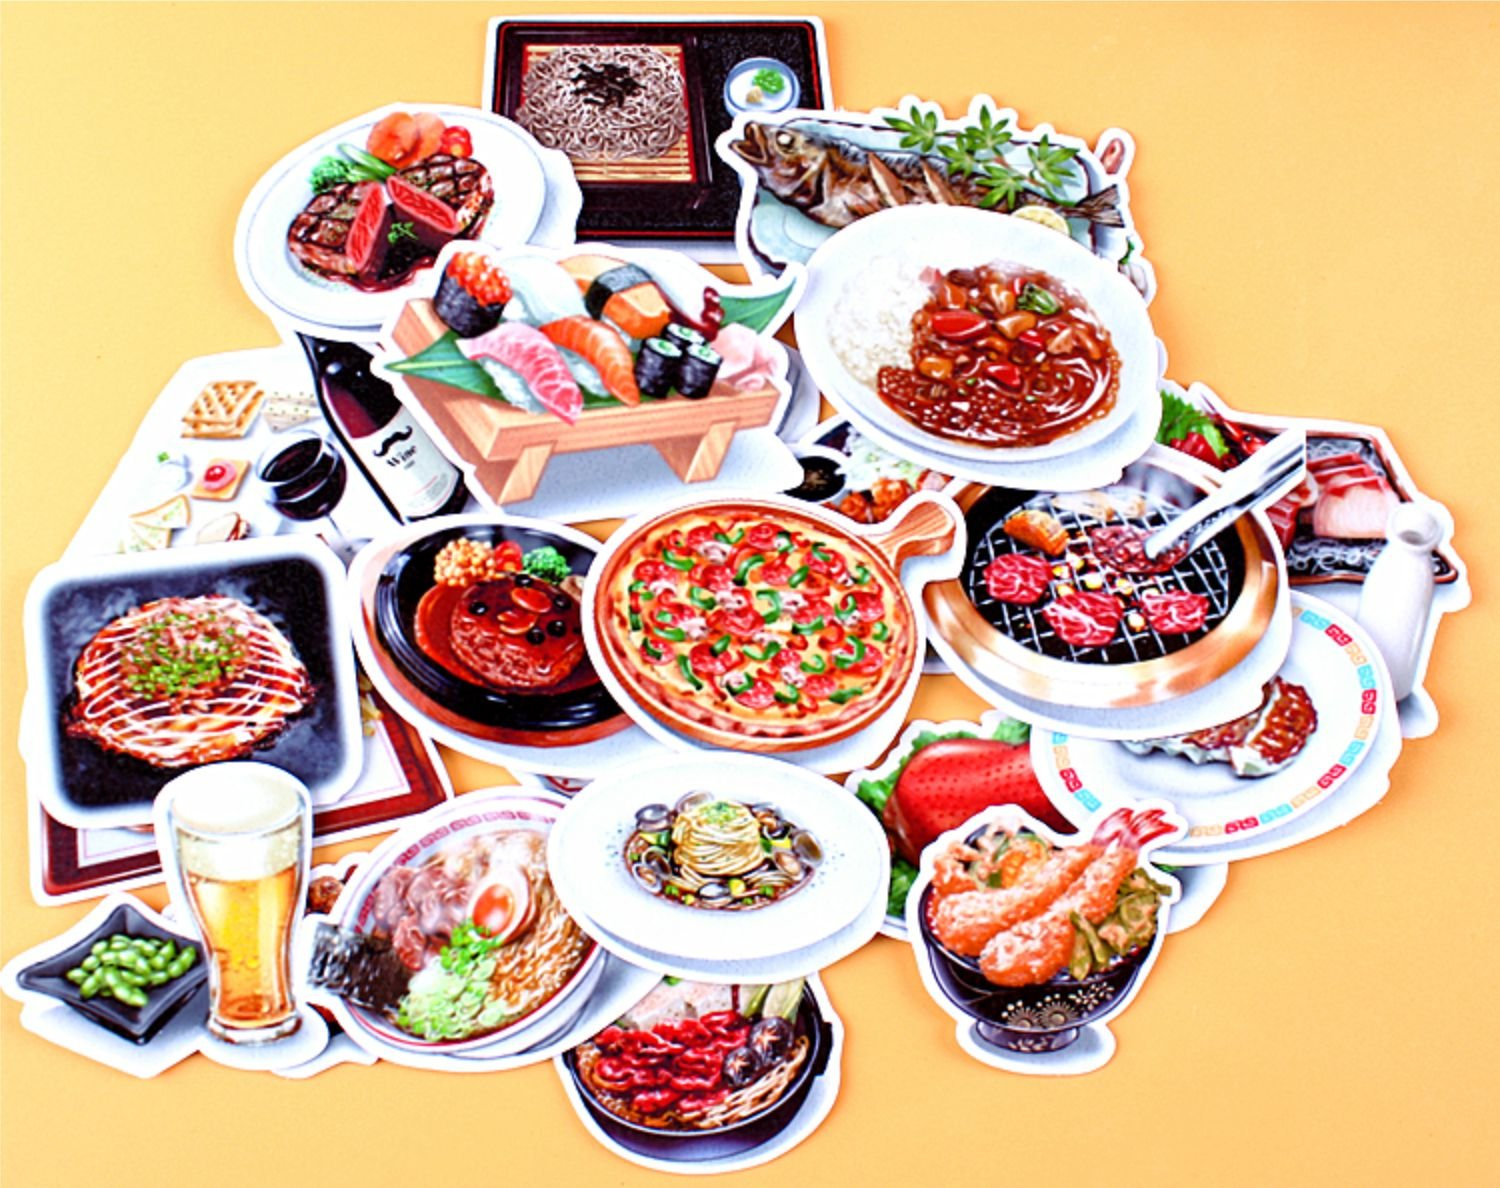 64pcs set self made yummy food pizza bbq scrapbooking stickers diy craft diy sticker pack photo albums diary decoration by jalaya amazon co uk kitchen